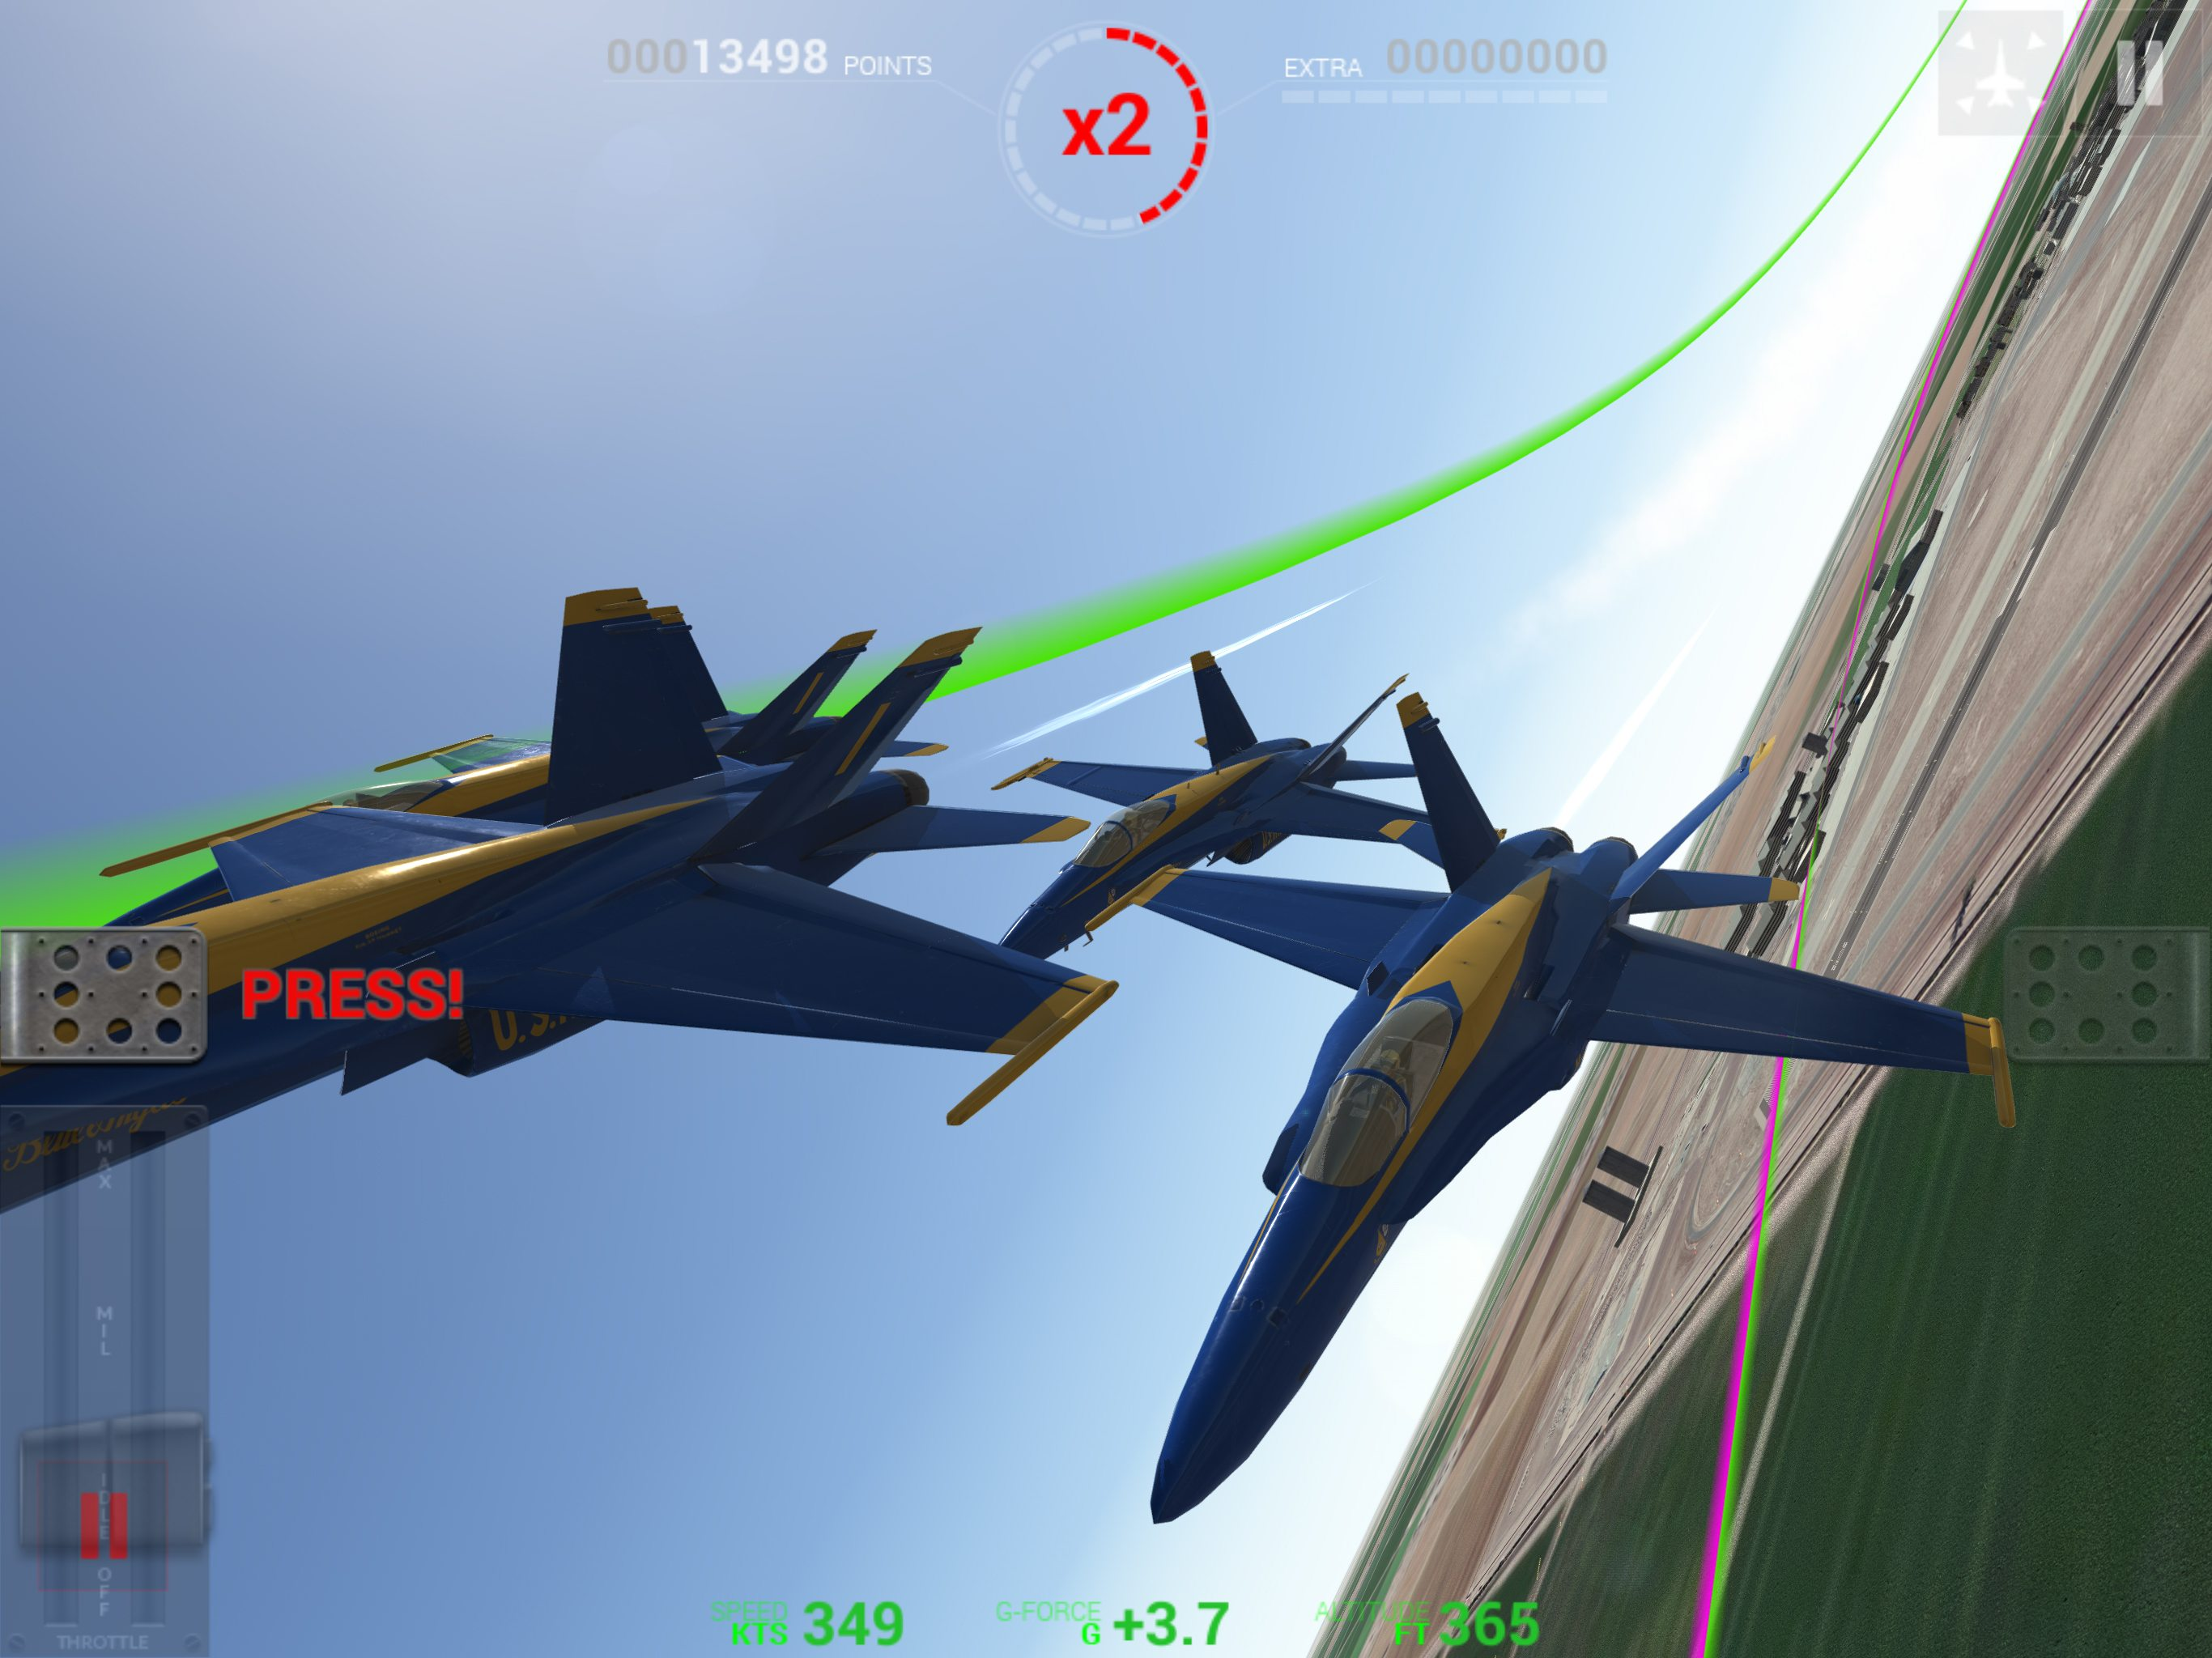 Blue Angels - Aerobatic Sim Announced for PC, Xbox and Mobile